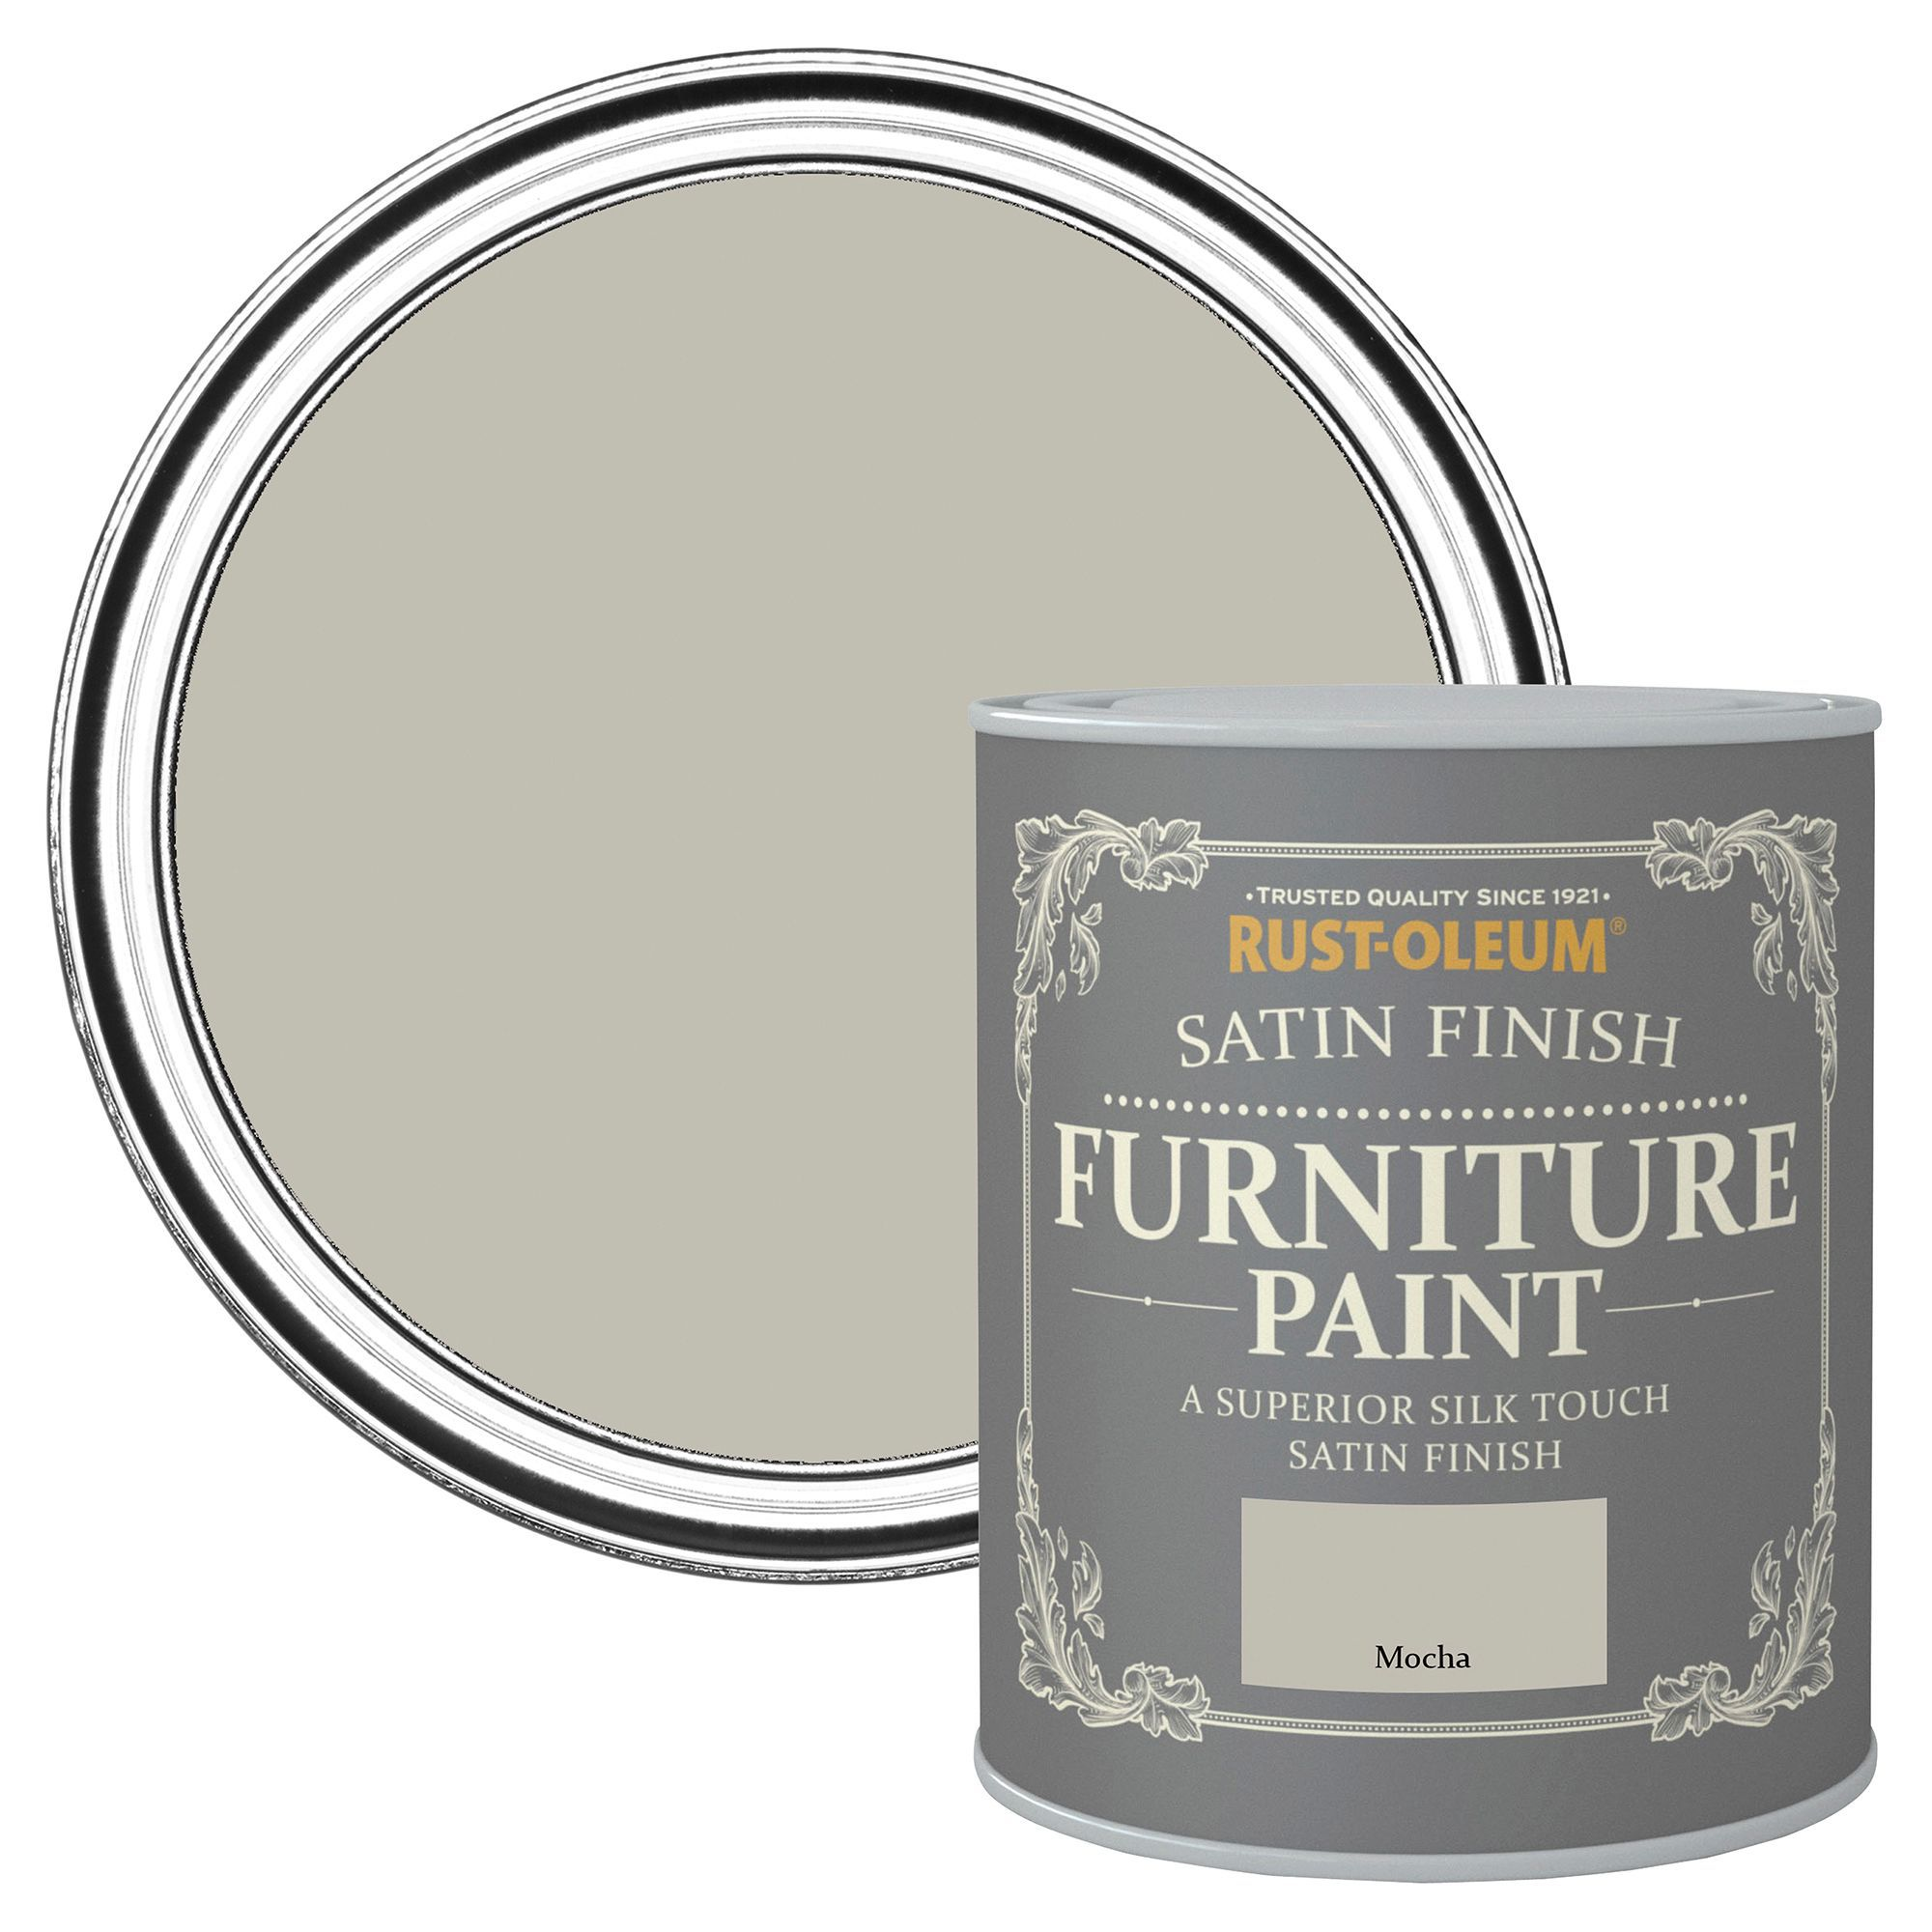 Rust Oleum Satin Finish Furniture Paint Shortbread